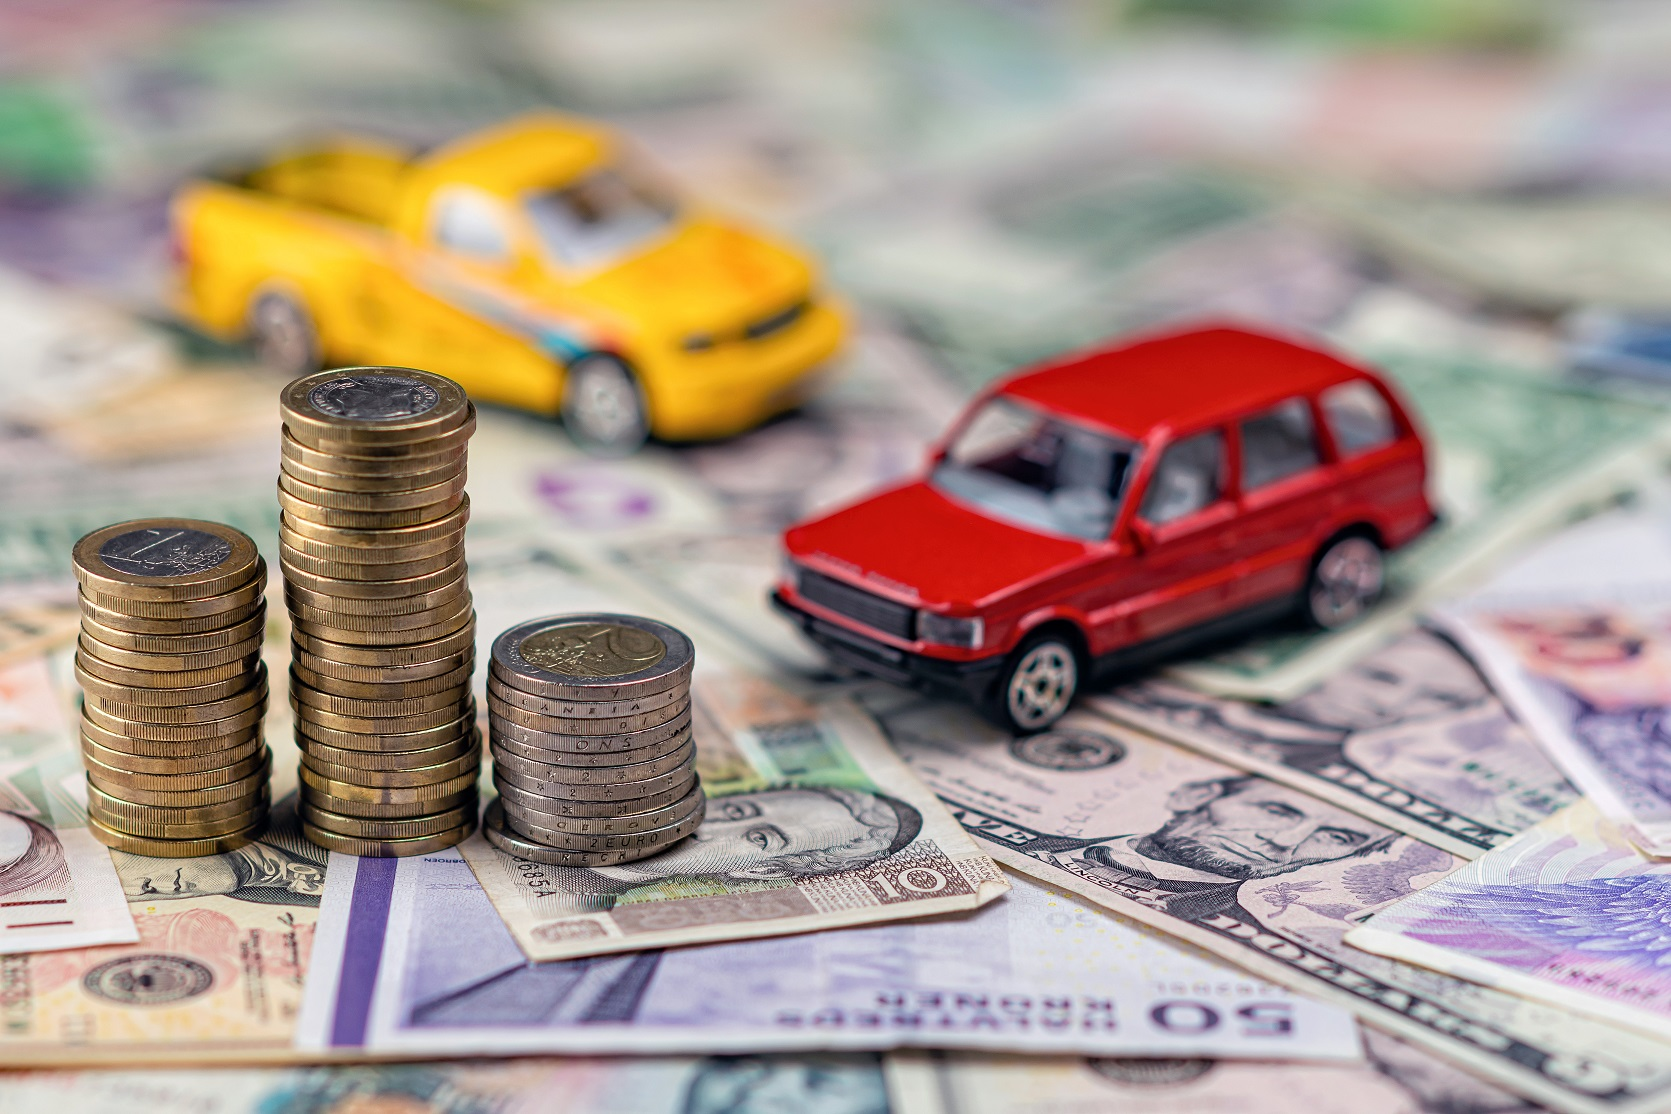 Failure to pay your car leasing installment: consequences and solutions to avoid foreclosure